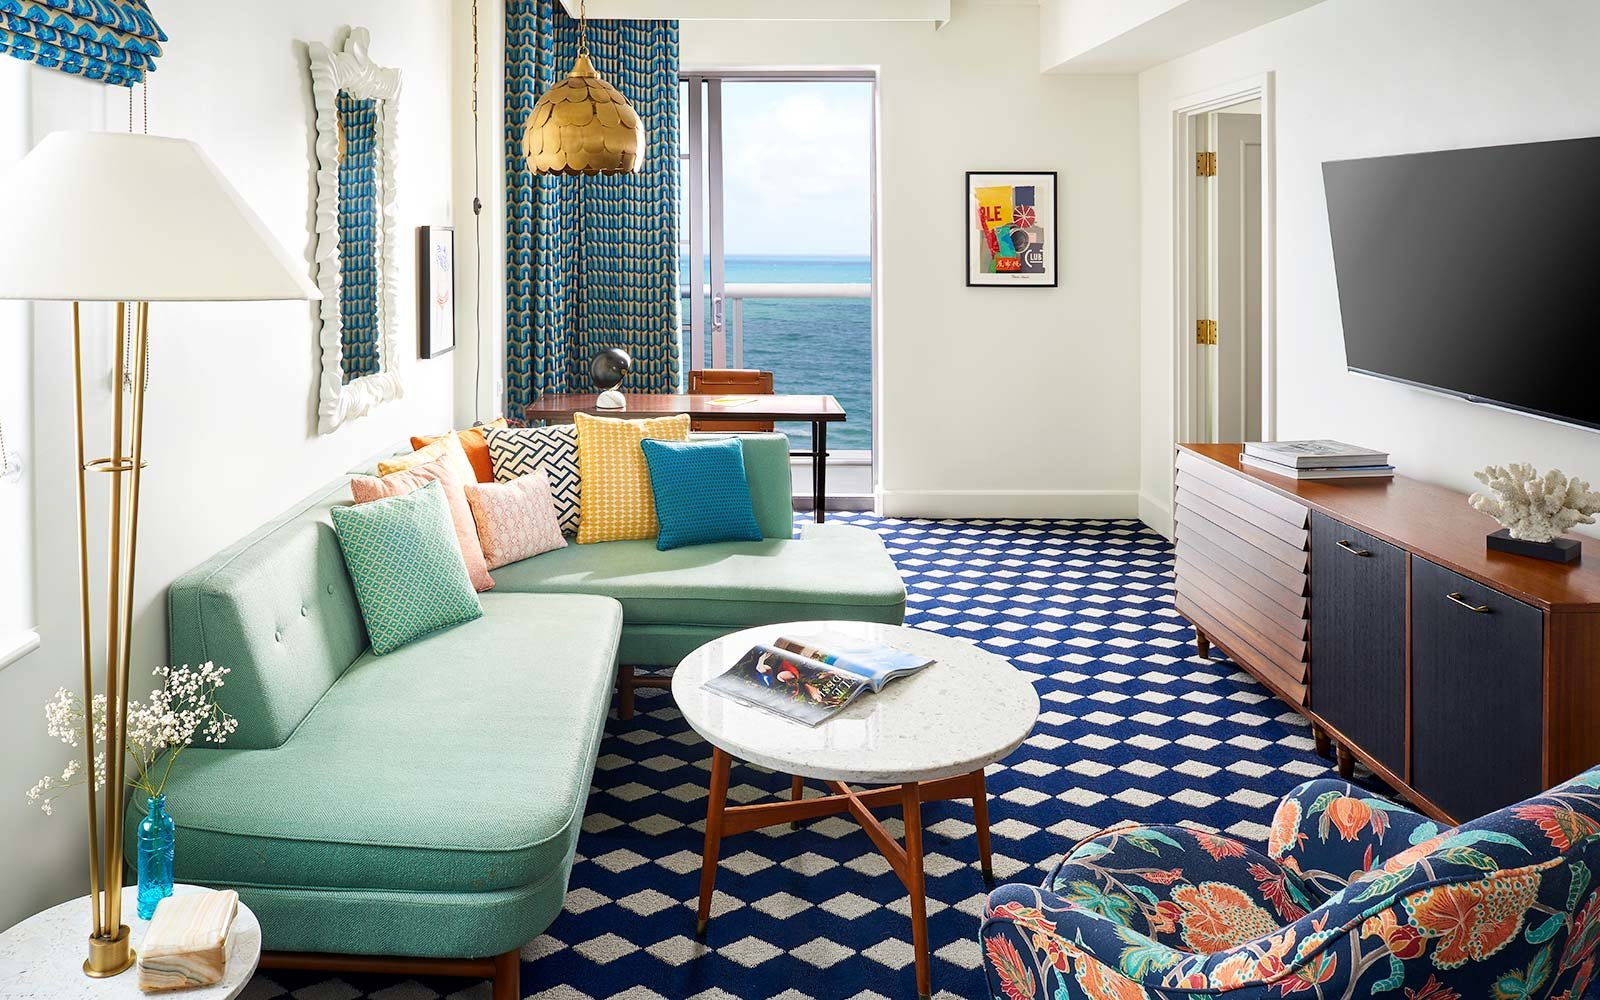 Living Room 50 Off get 50% off a last-minute hotel room upgrade with this app